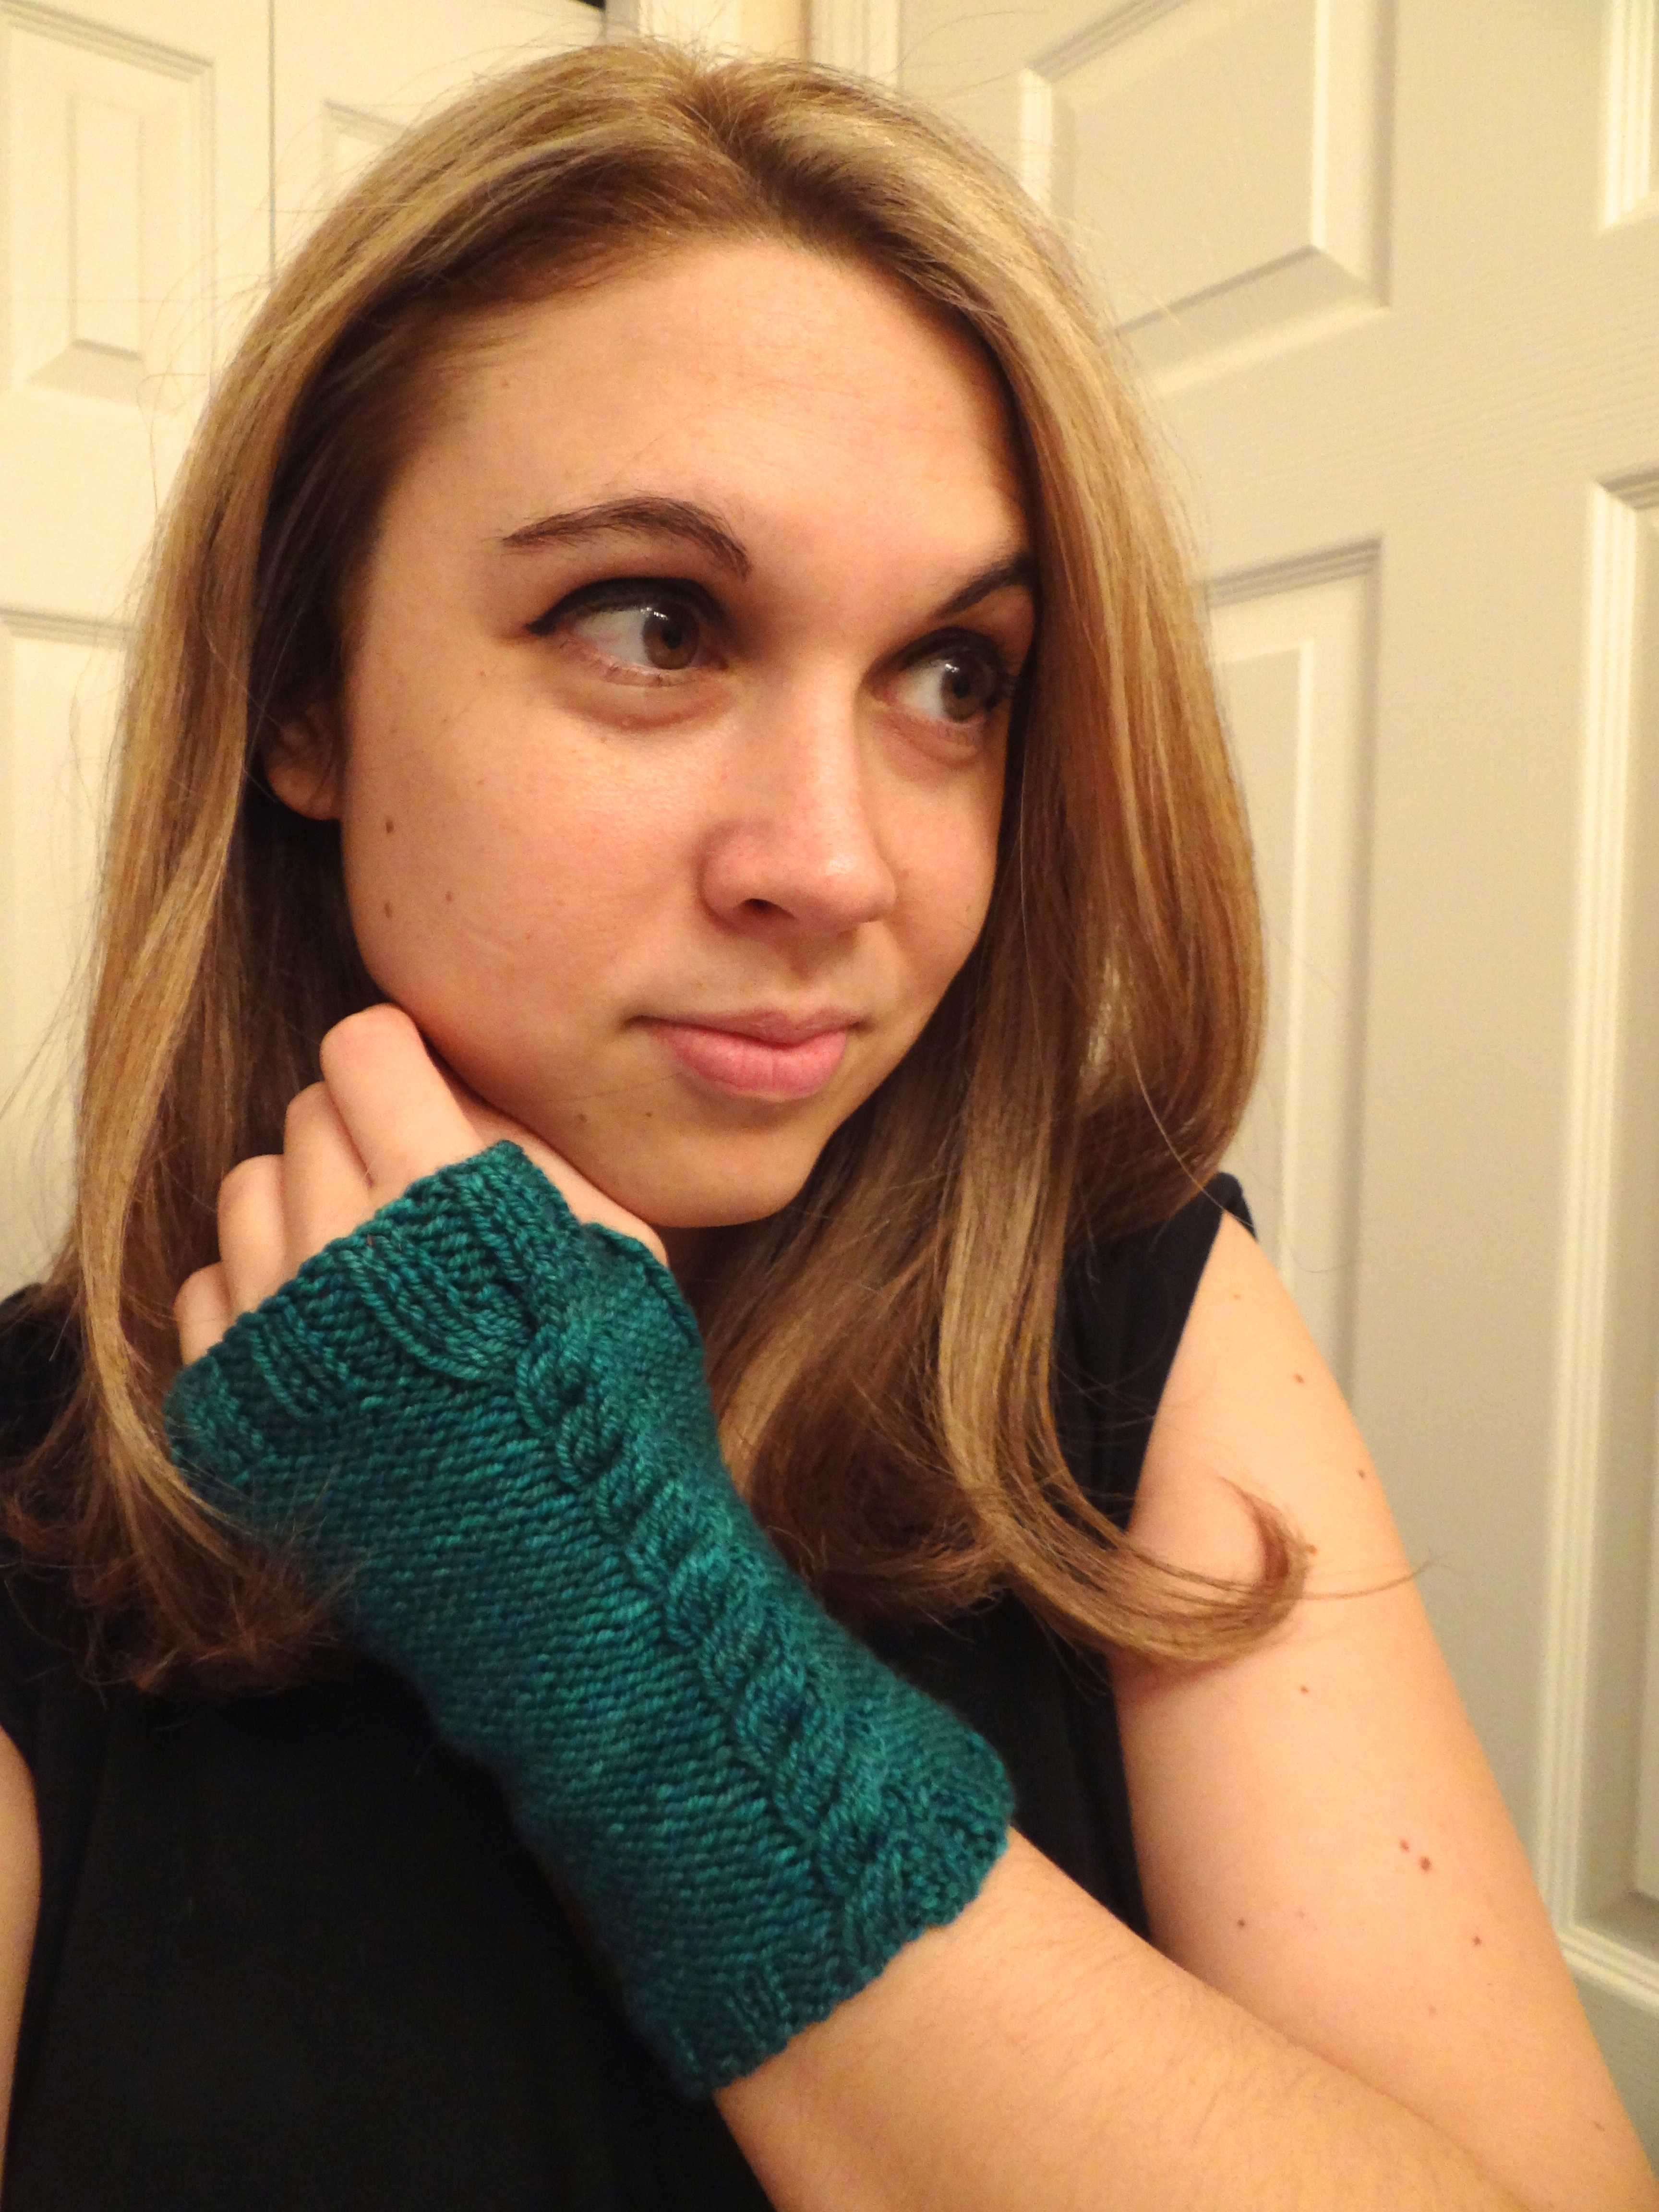 Cabled Mitts